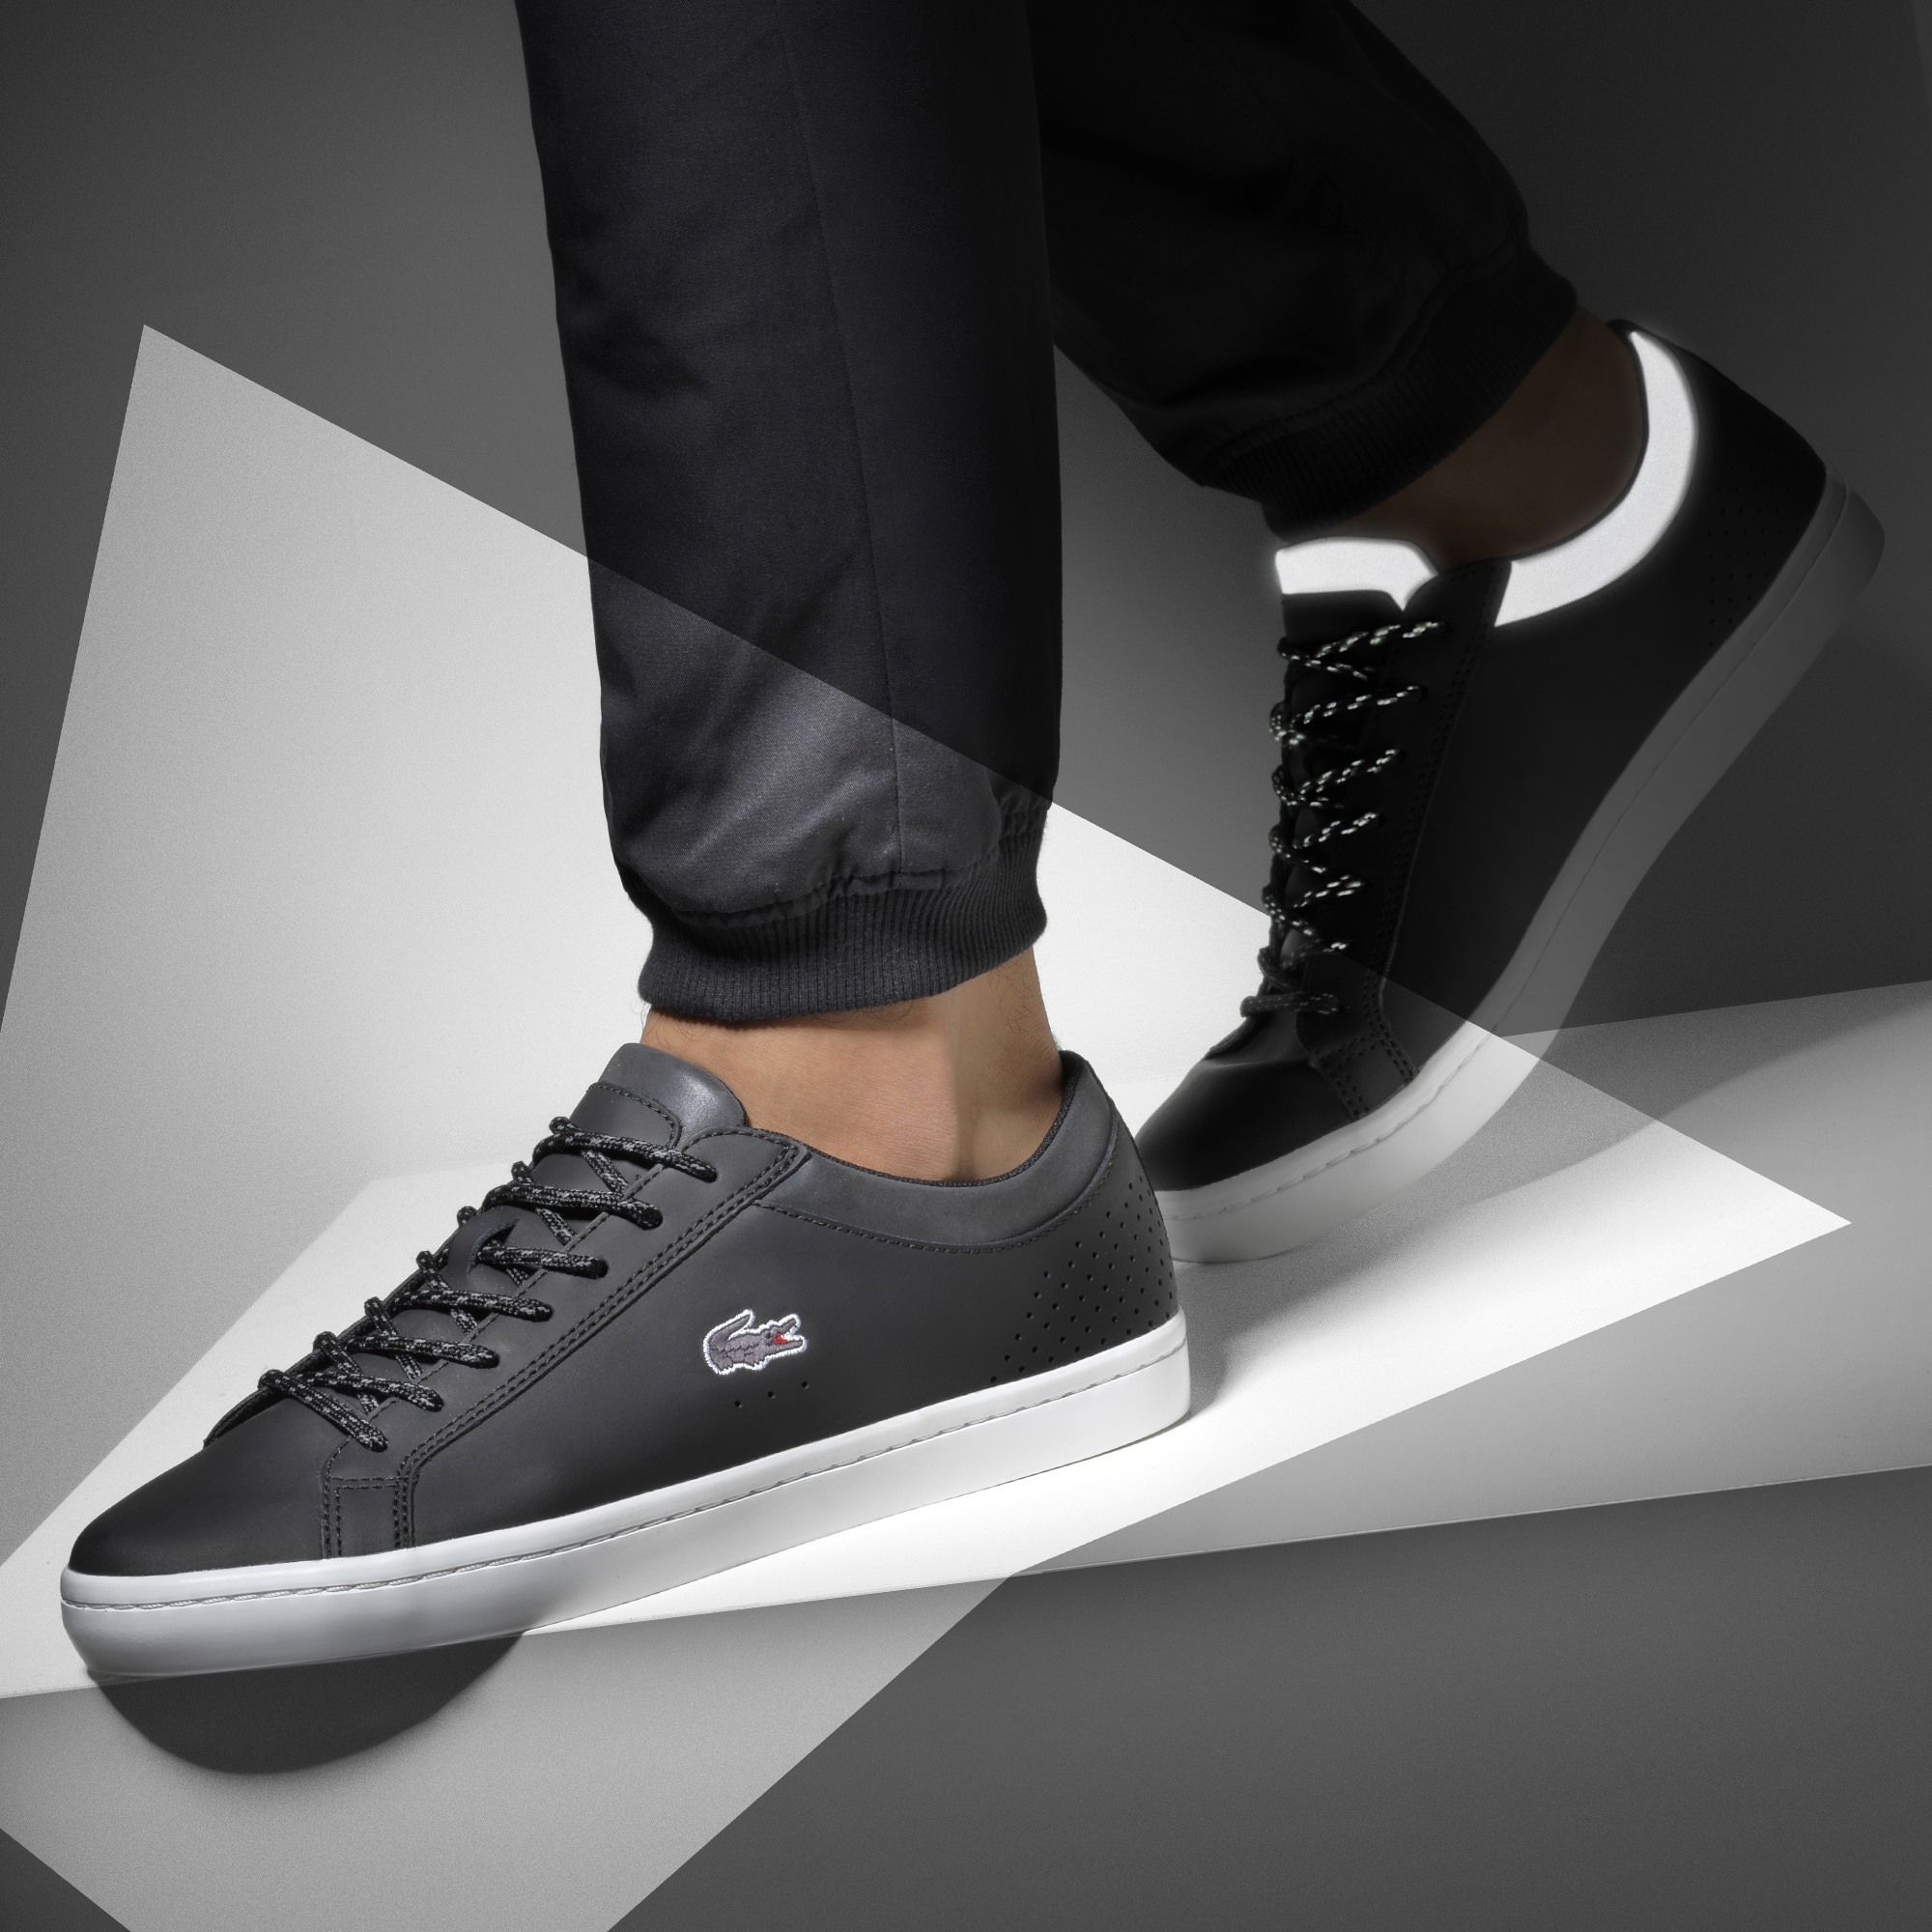 creme-creative-lacoste-reflective-pack-2.jpg